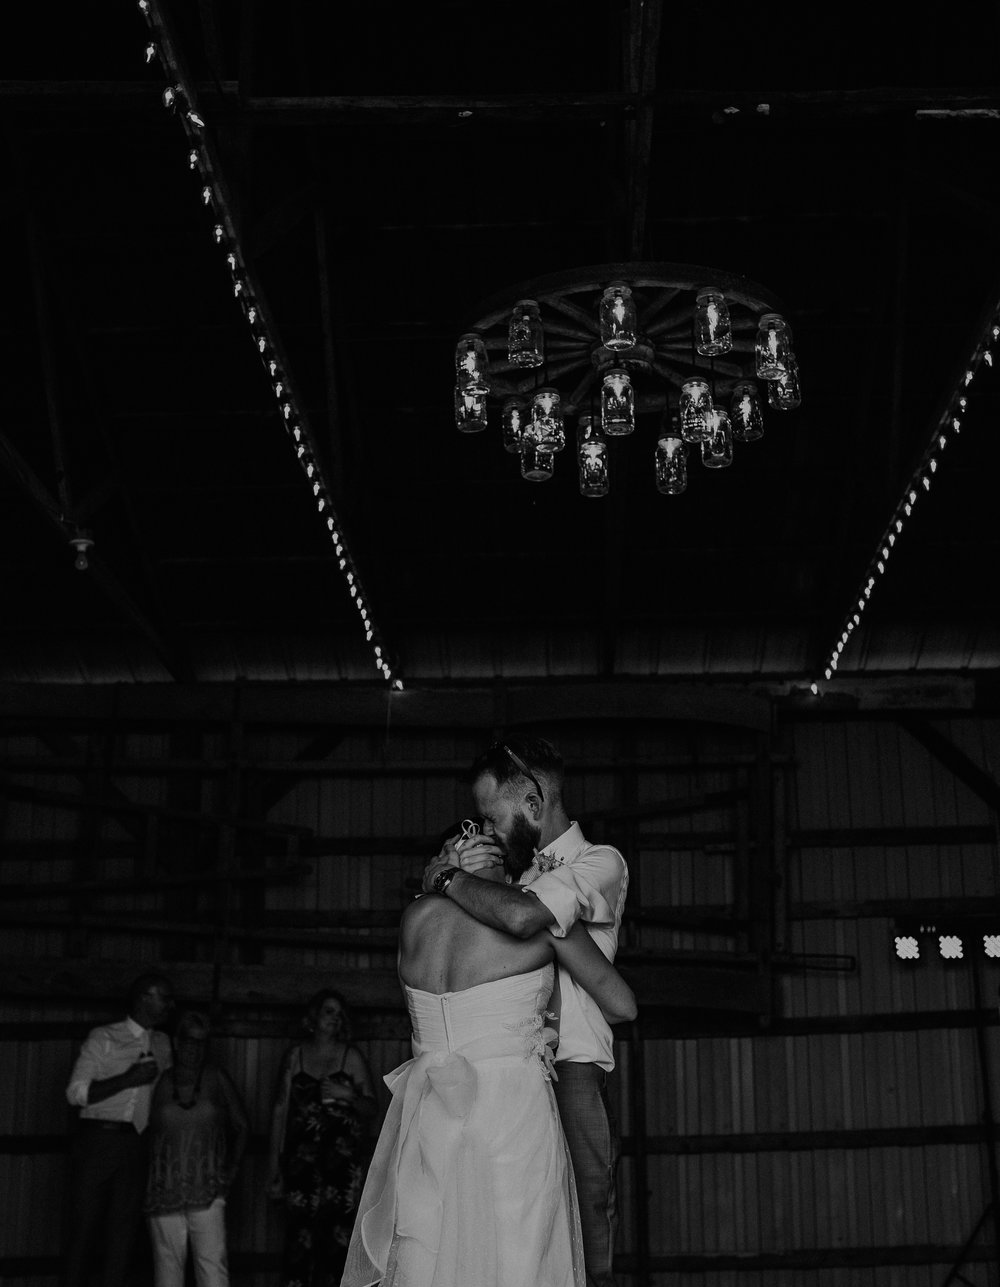 Zack_and_Courtney_Cincinnati_Wedding-EDIT-450.JPG